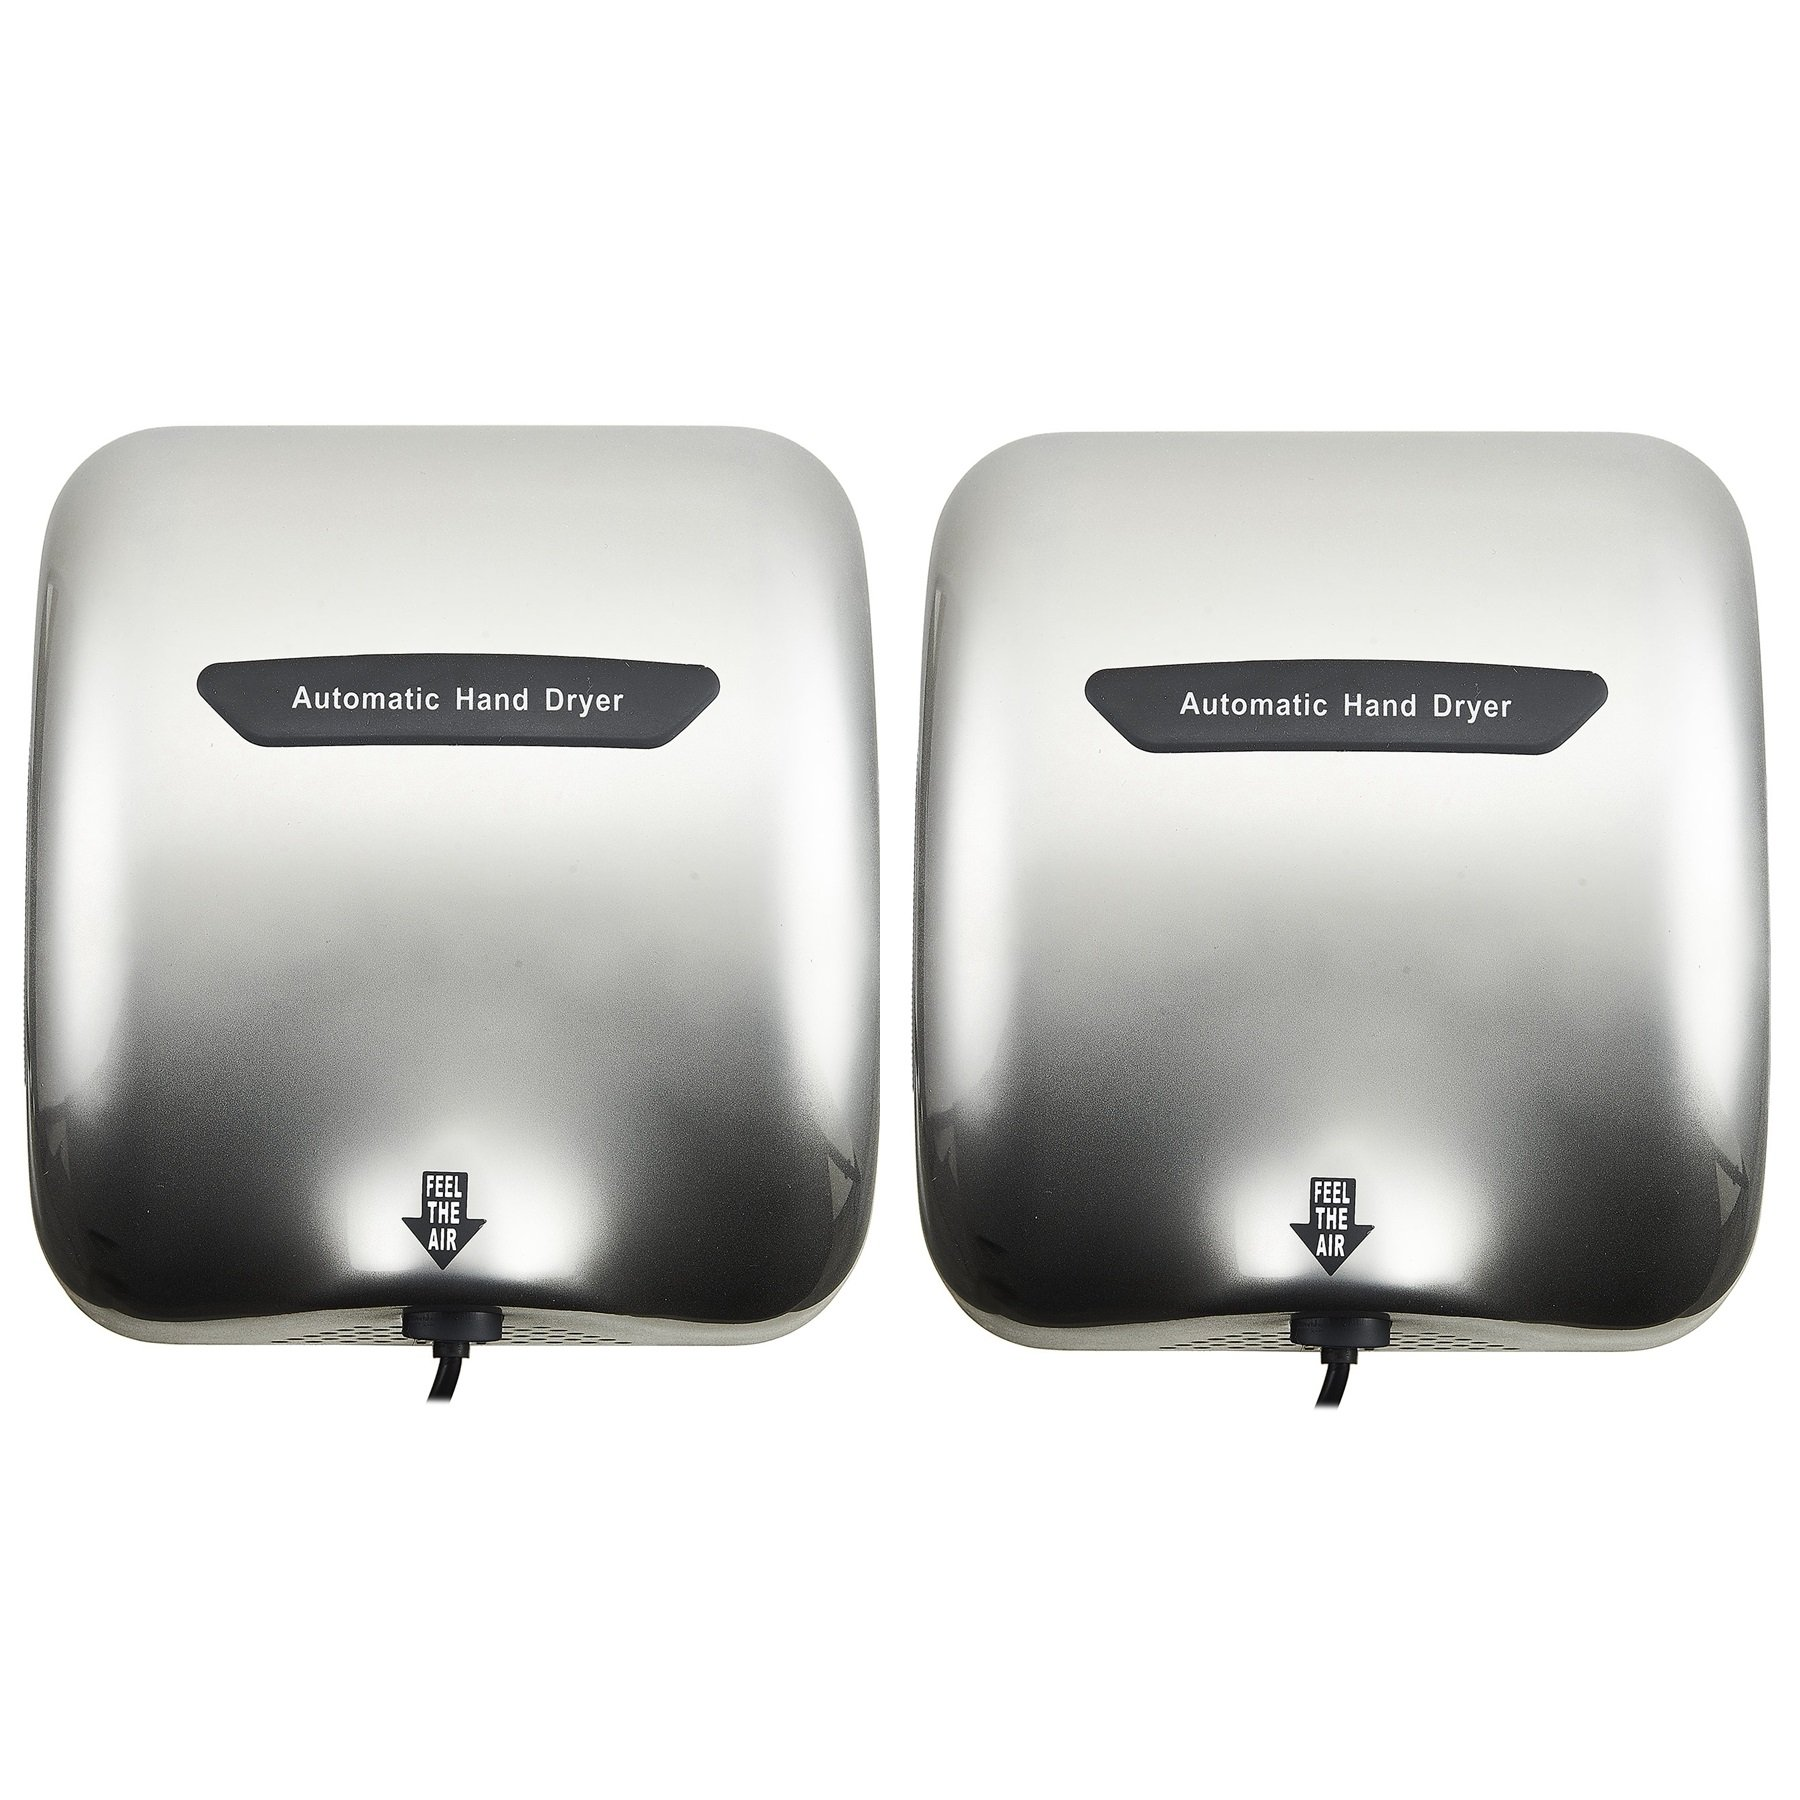 Tek Motion Commercial Premium Quality Heavy Duty Durable Hand Dryer Stainless Steel 1800w (2 pack) (silver white) by Tek Motion